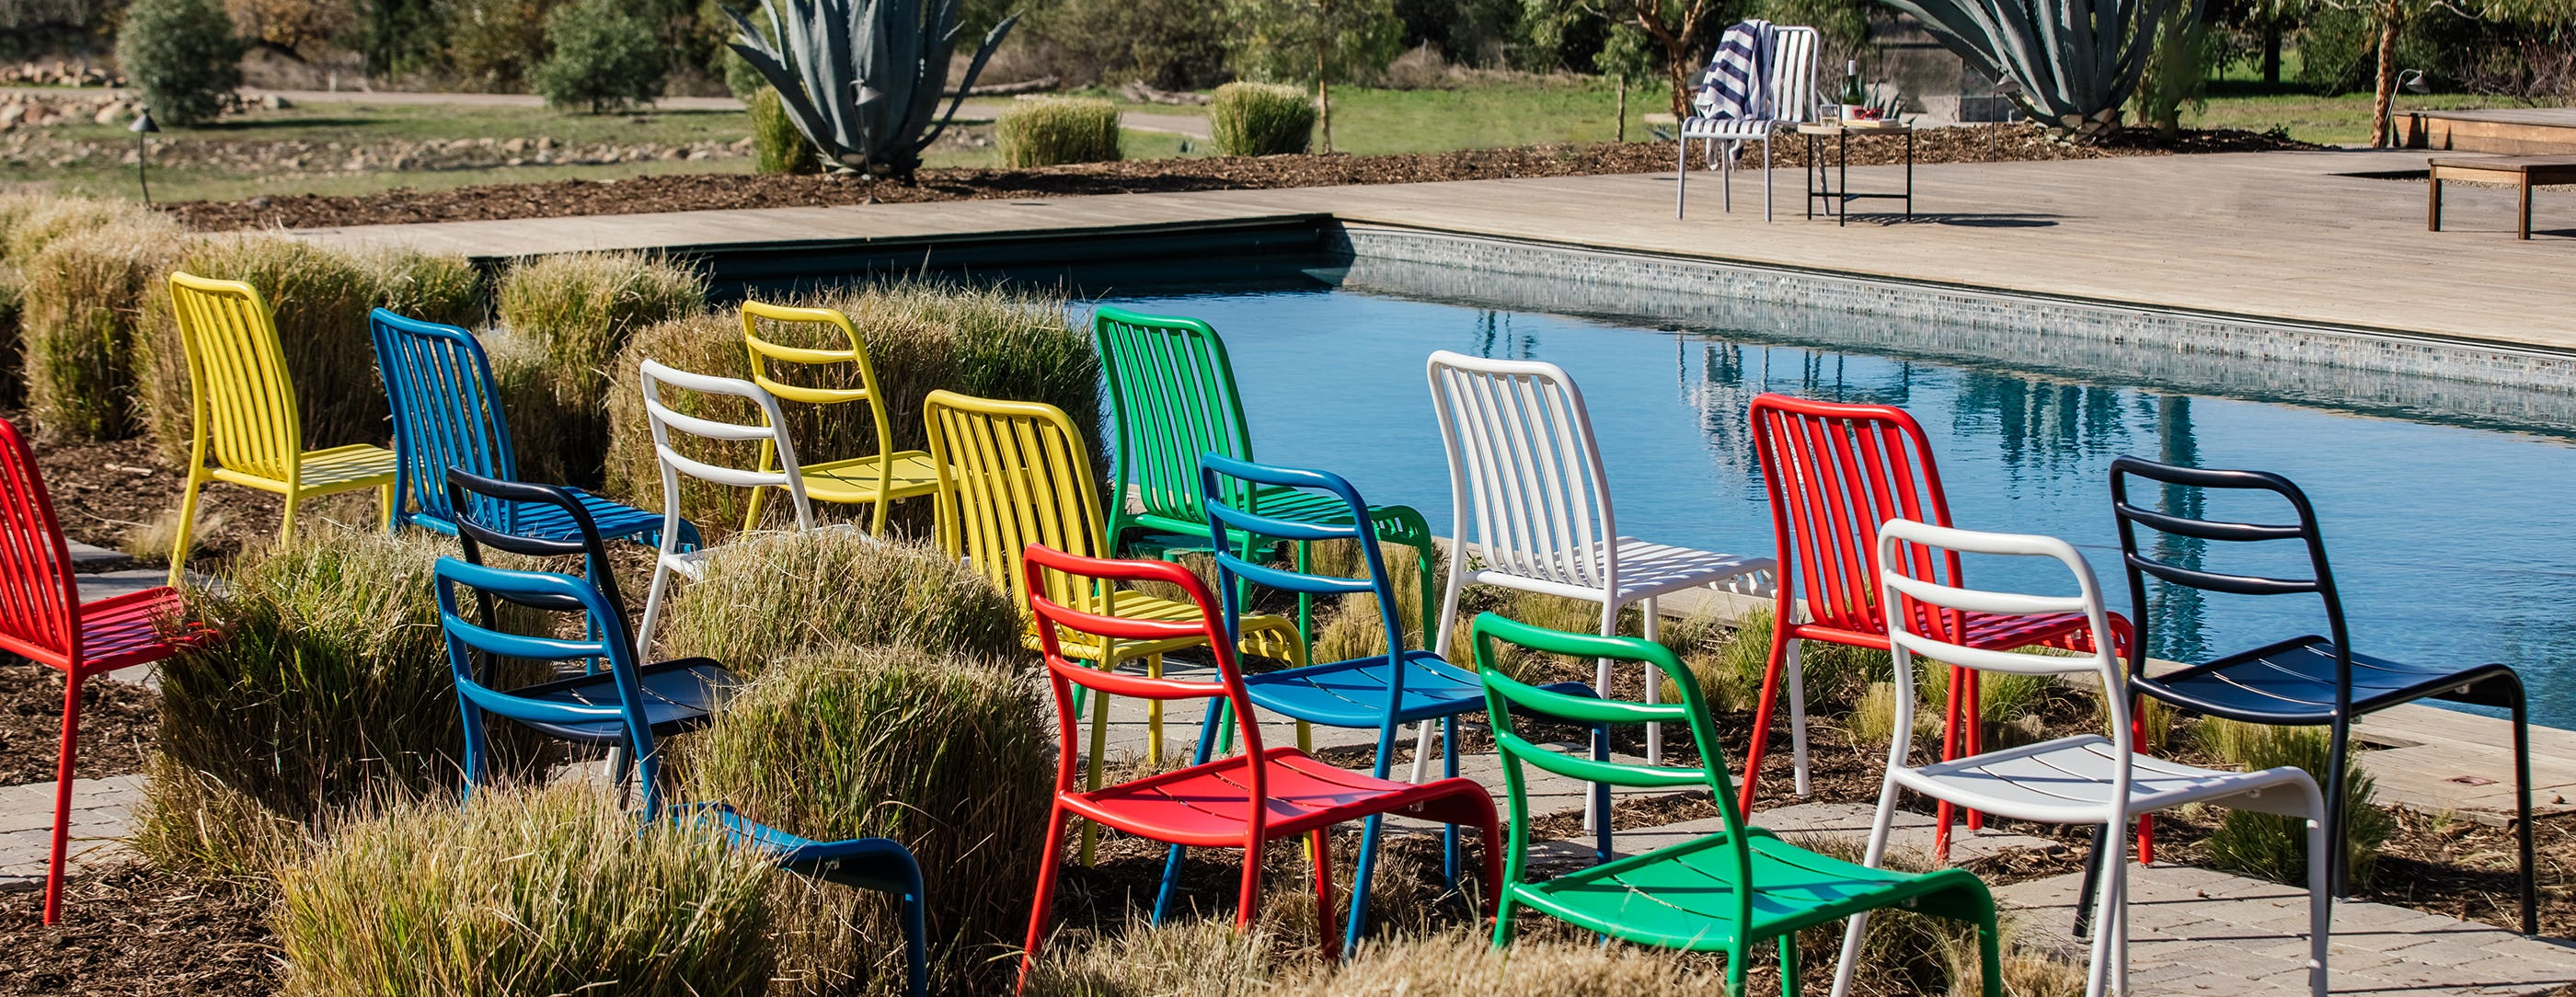 Four Yellow Suzy Side chairs in Ojai, CA